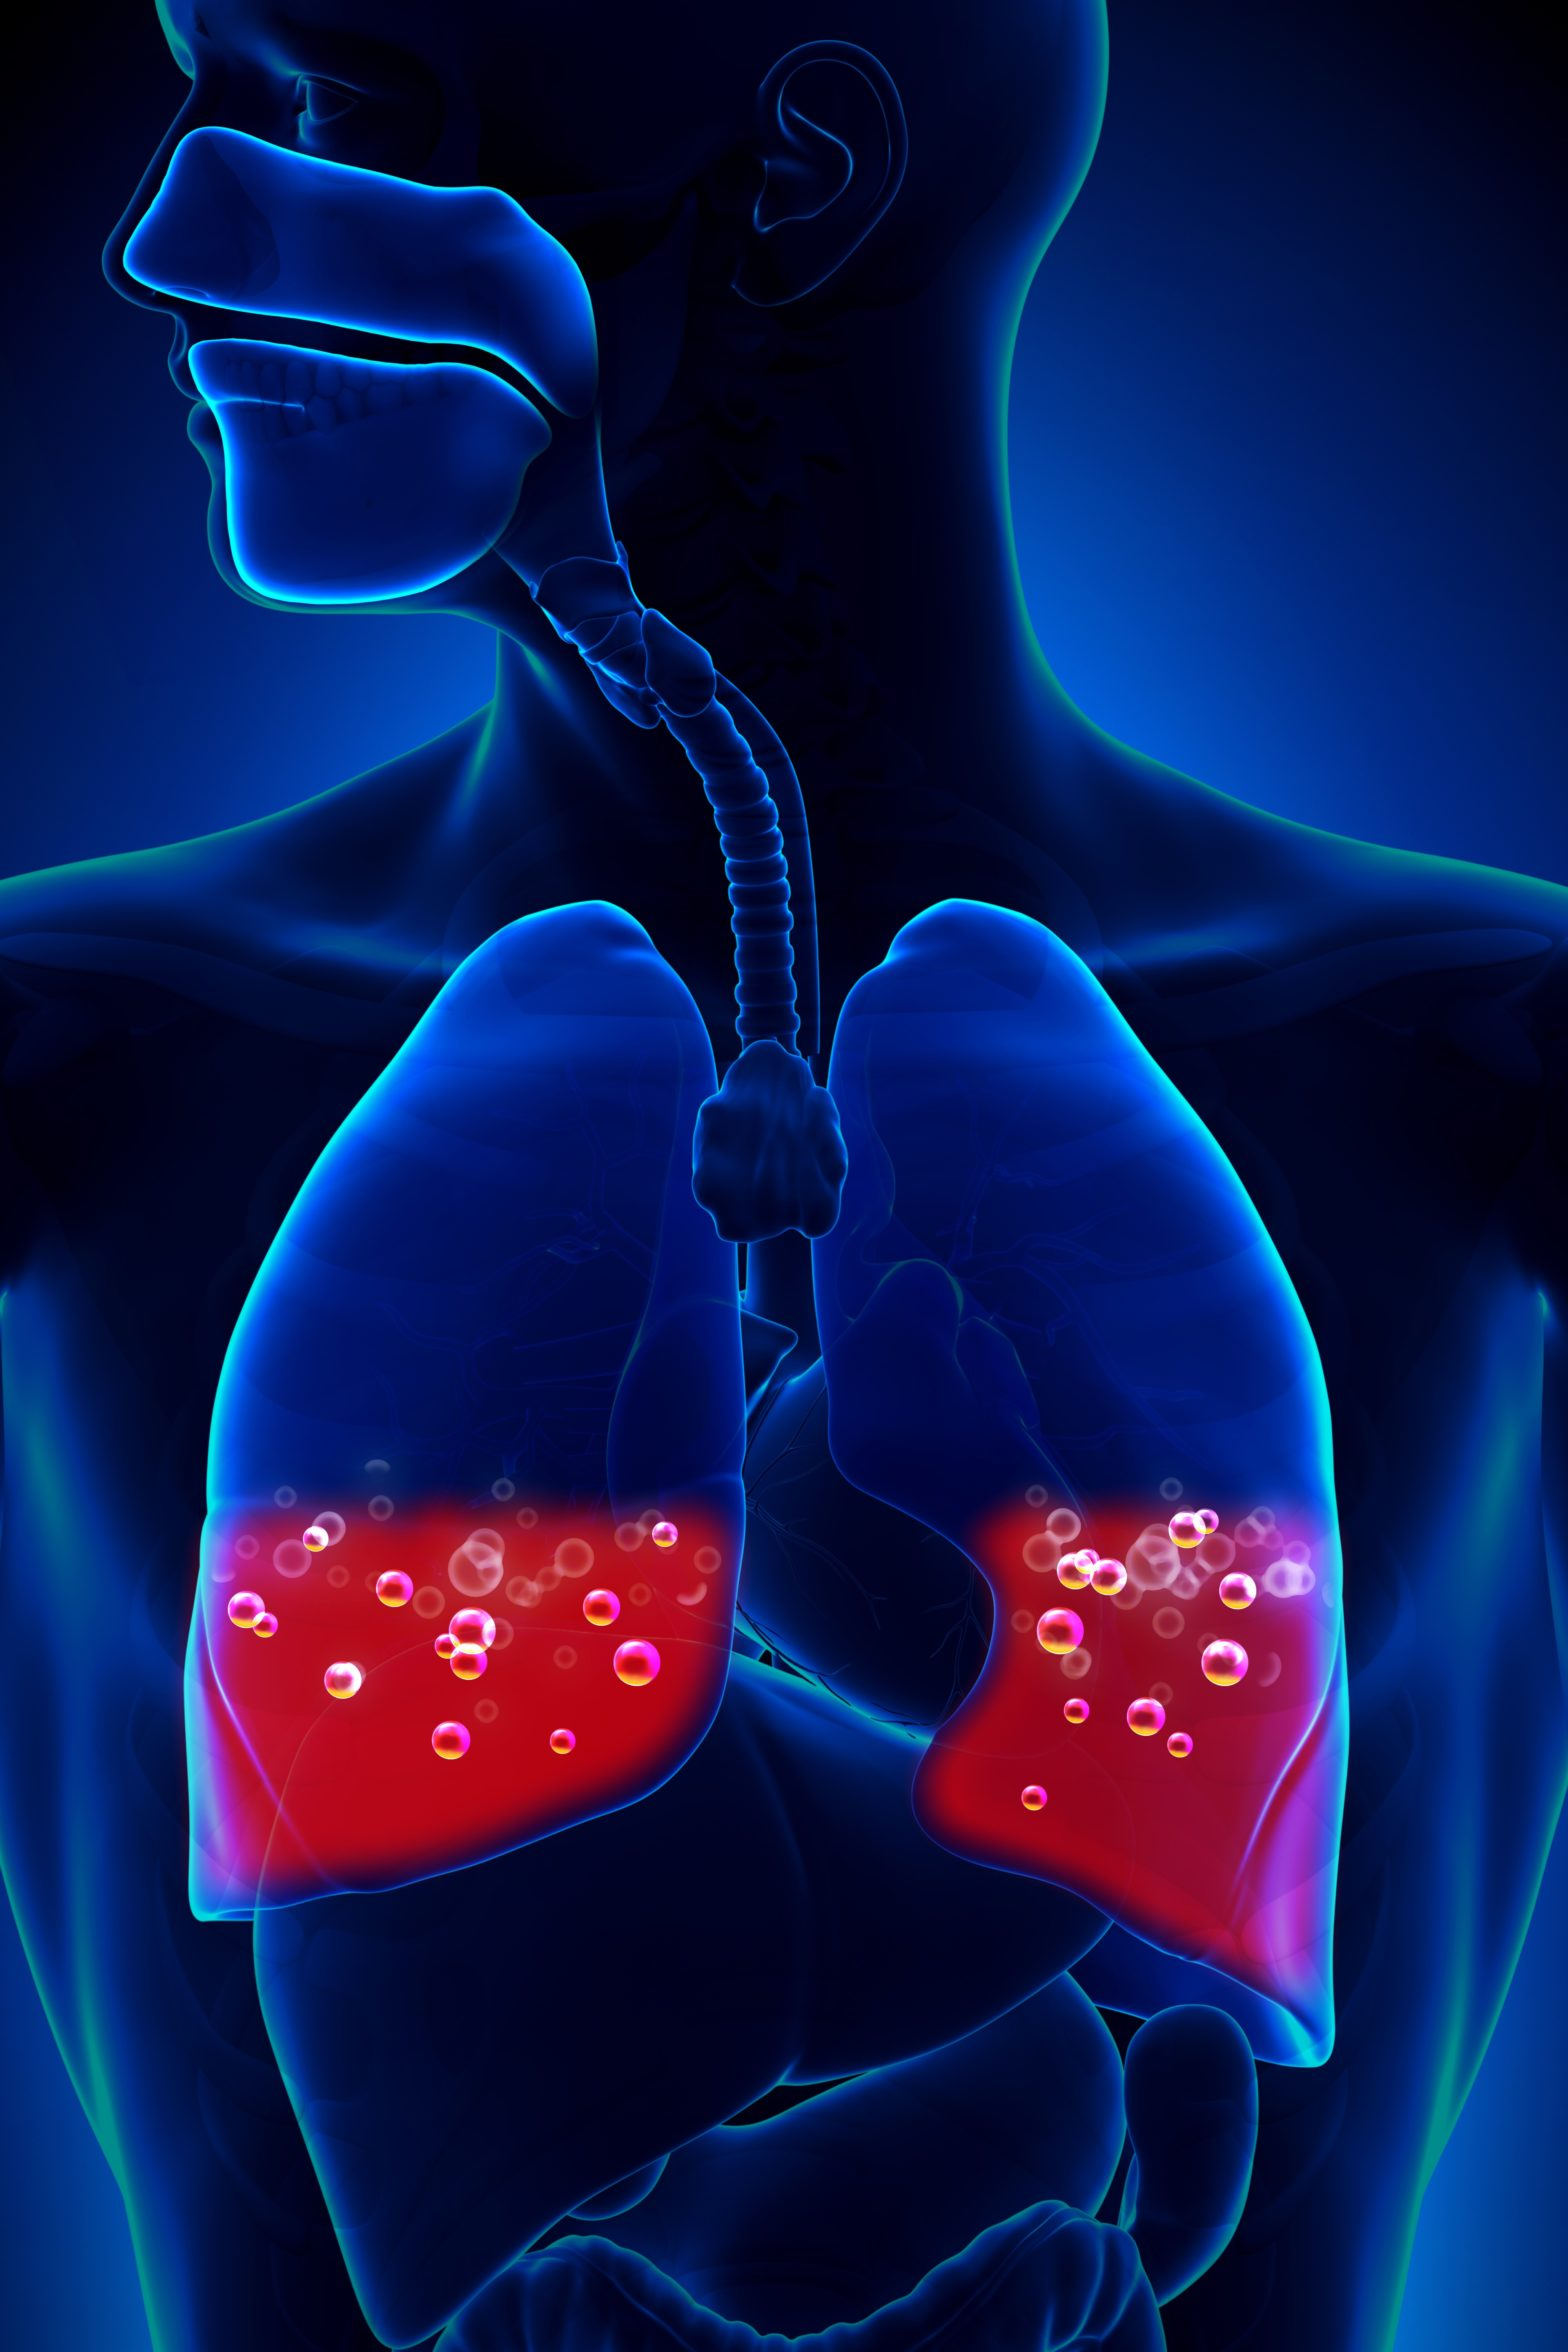 Pulmonary embolism: which patients should receive thrombolytic therapy?